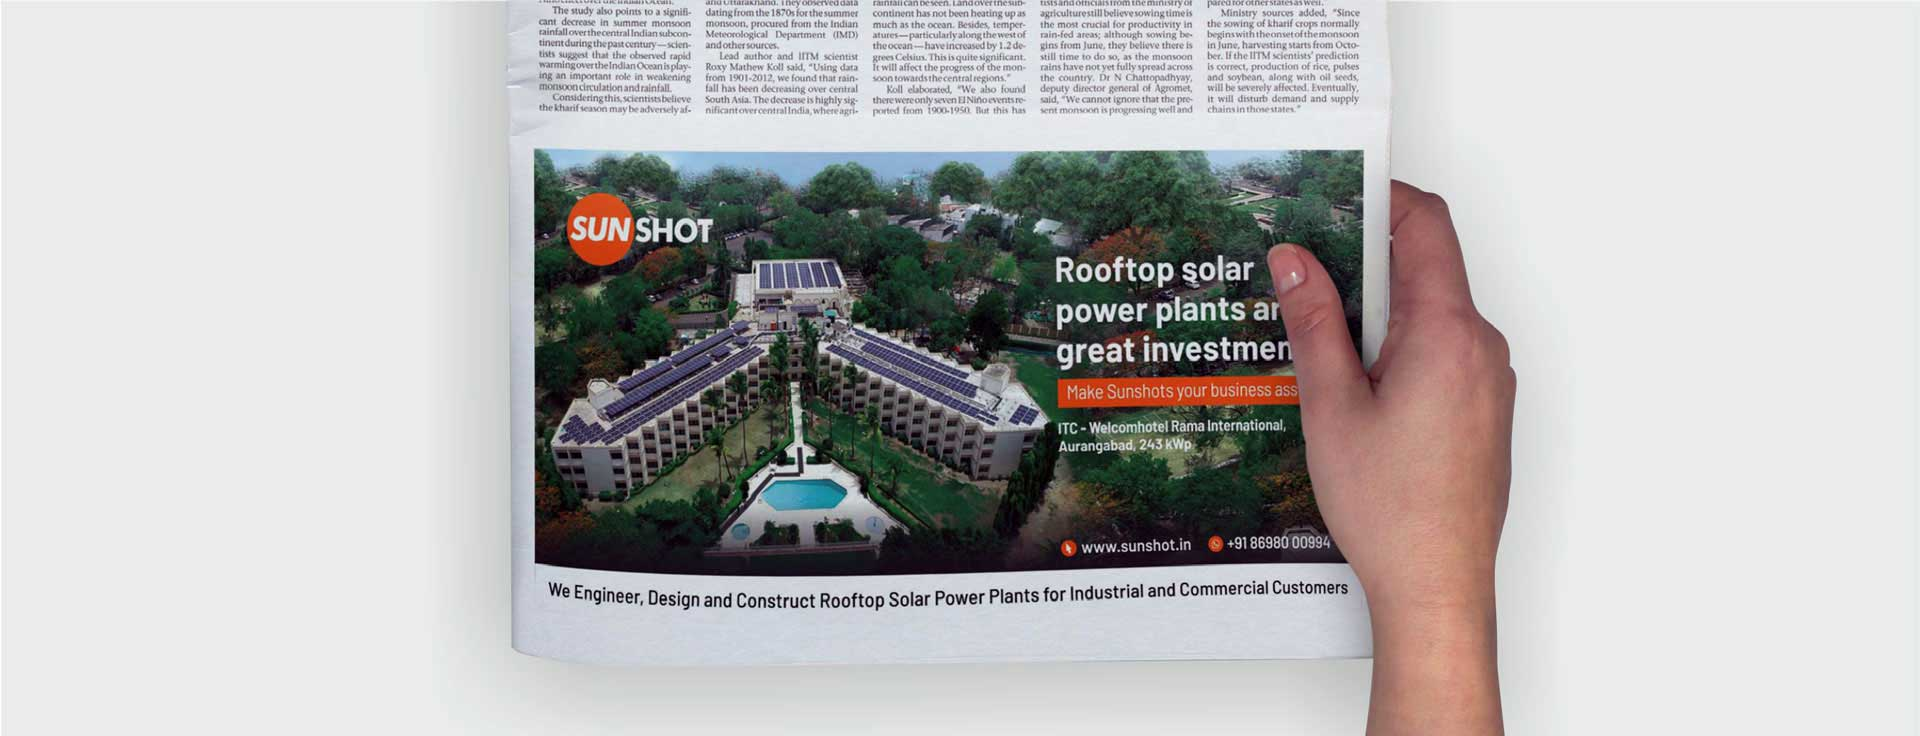 Sunshot-Newspaper-Ad-Banner